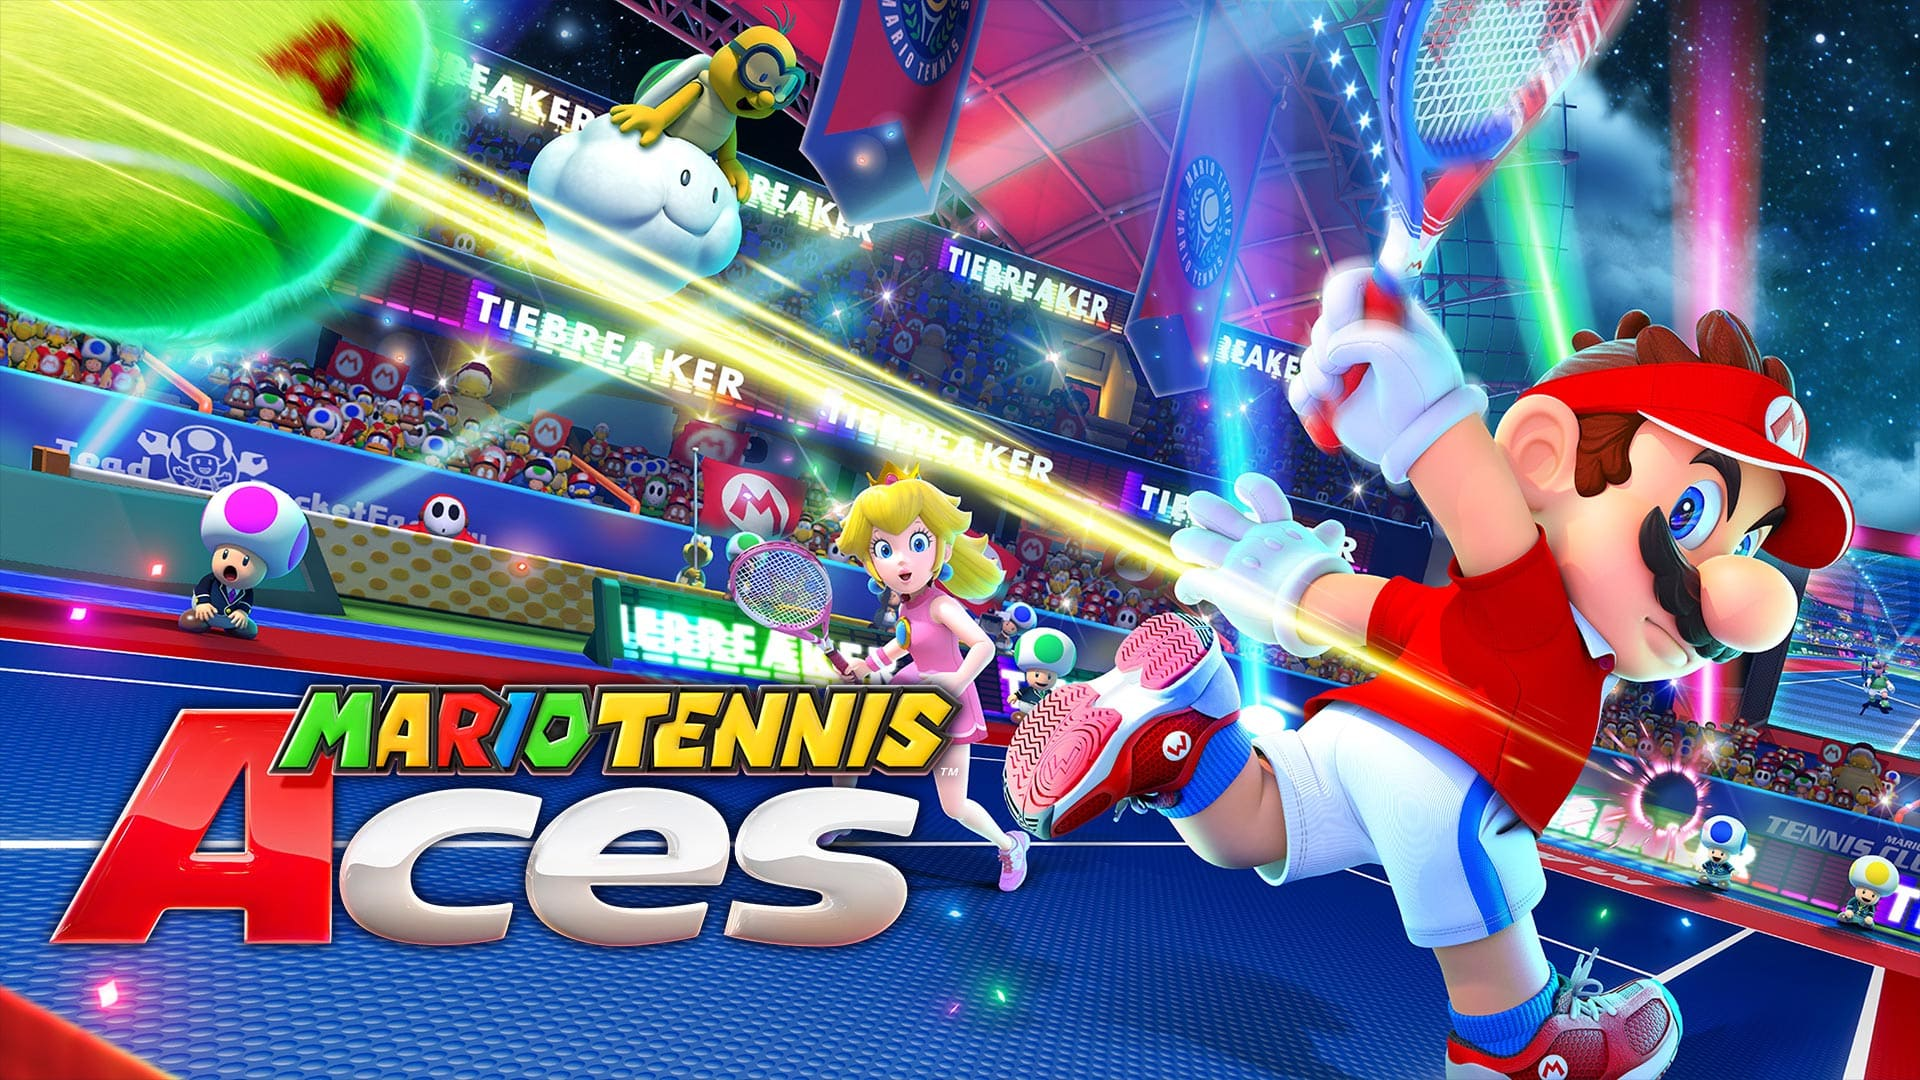 Mario tennis aces is one of the absolute best workout games on Switch